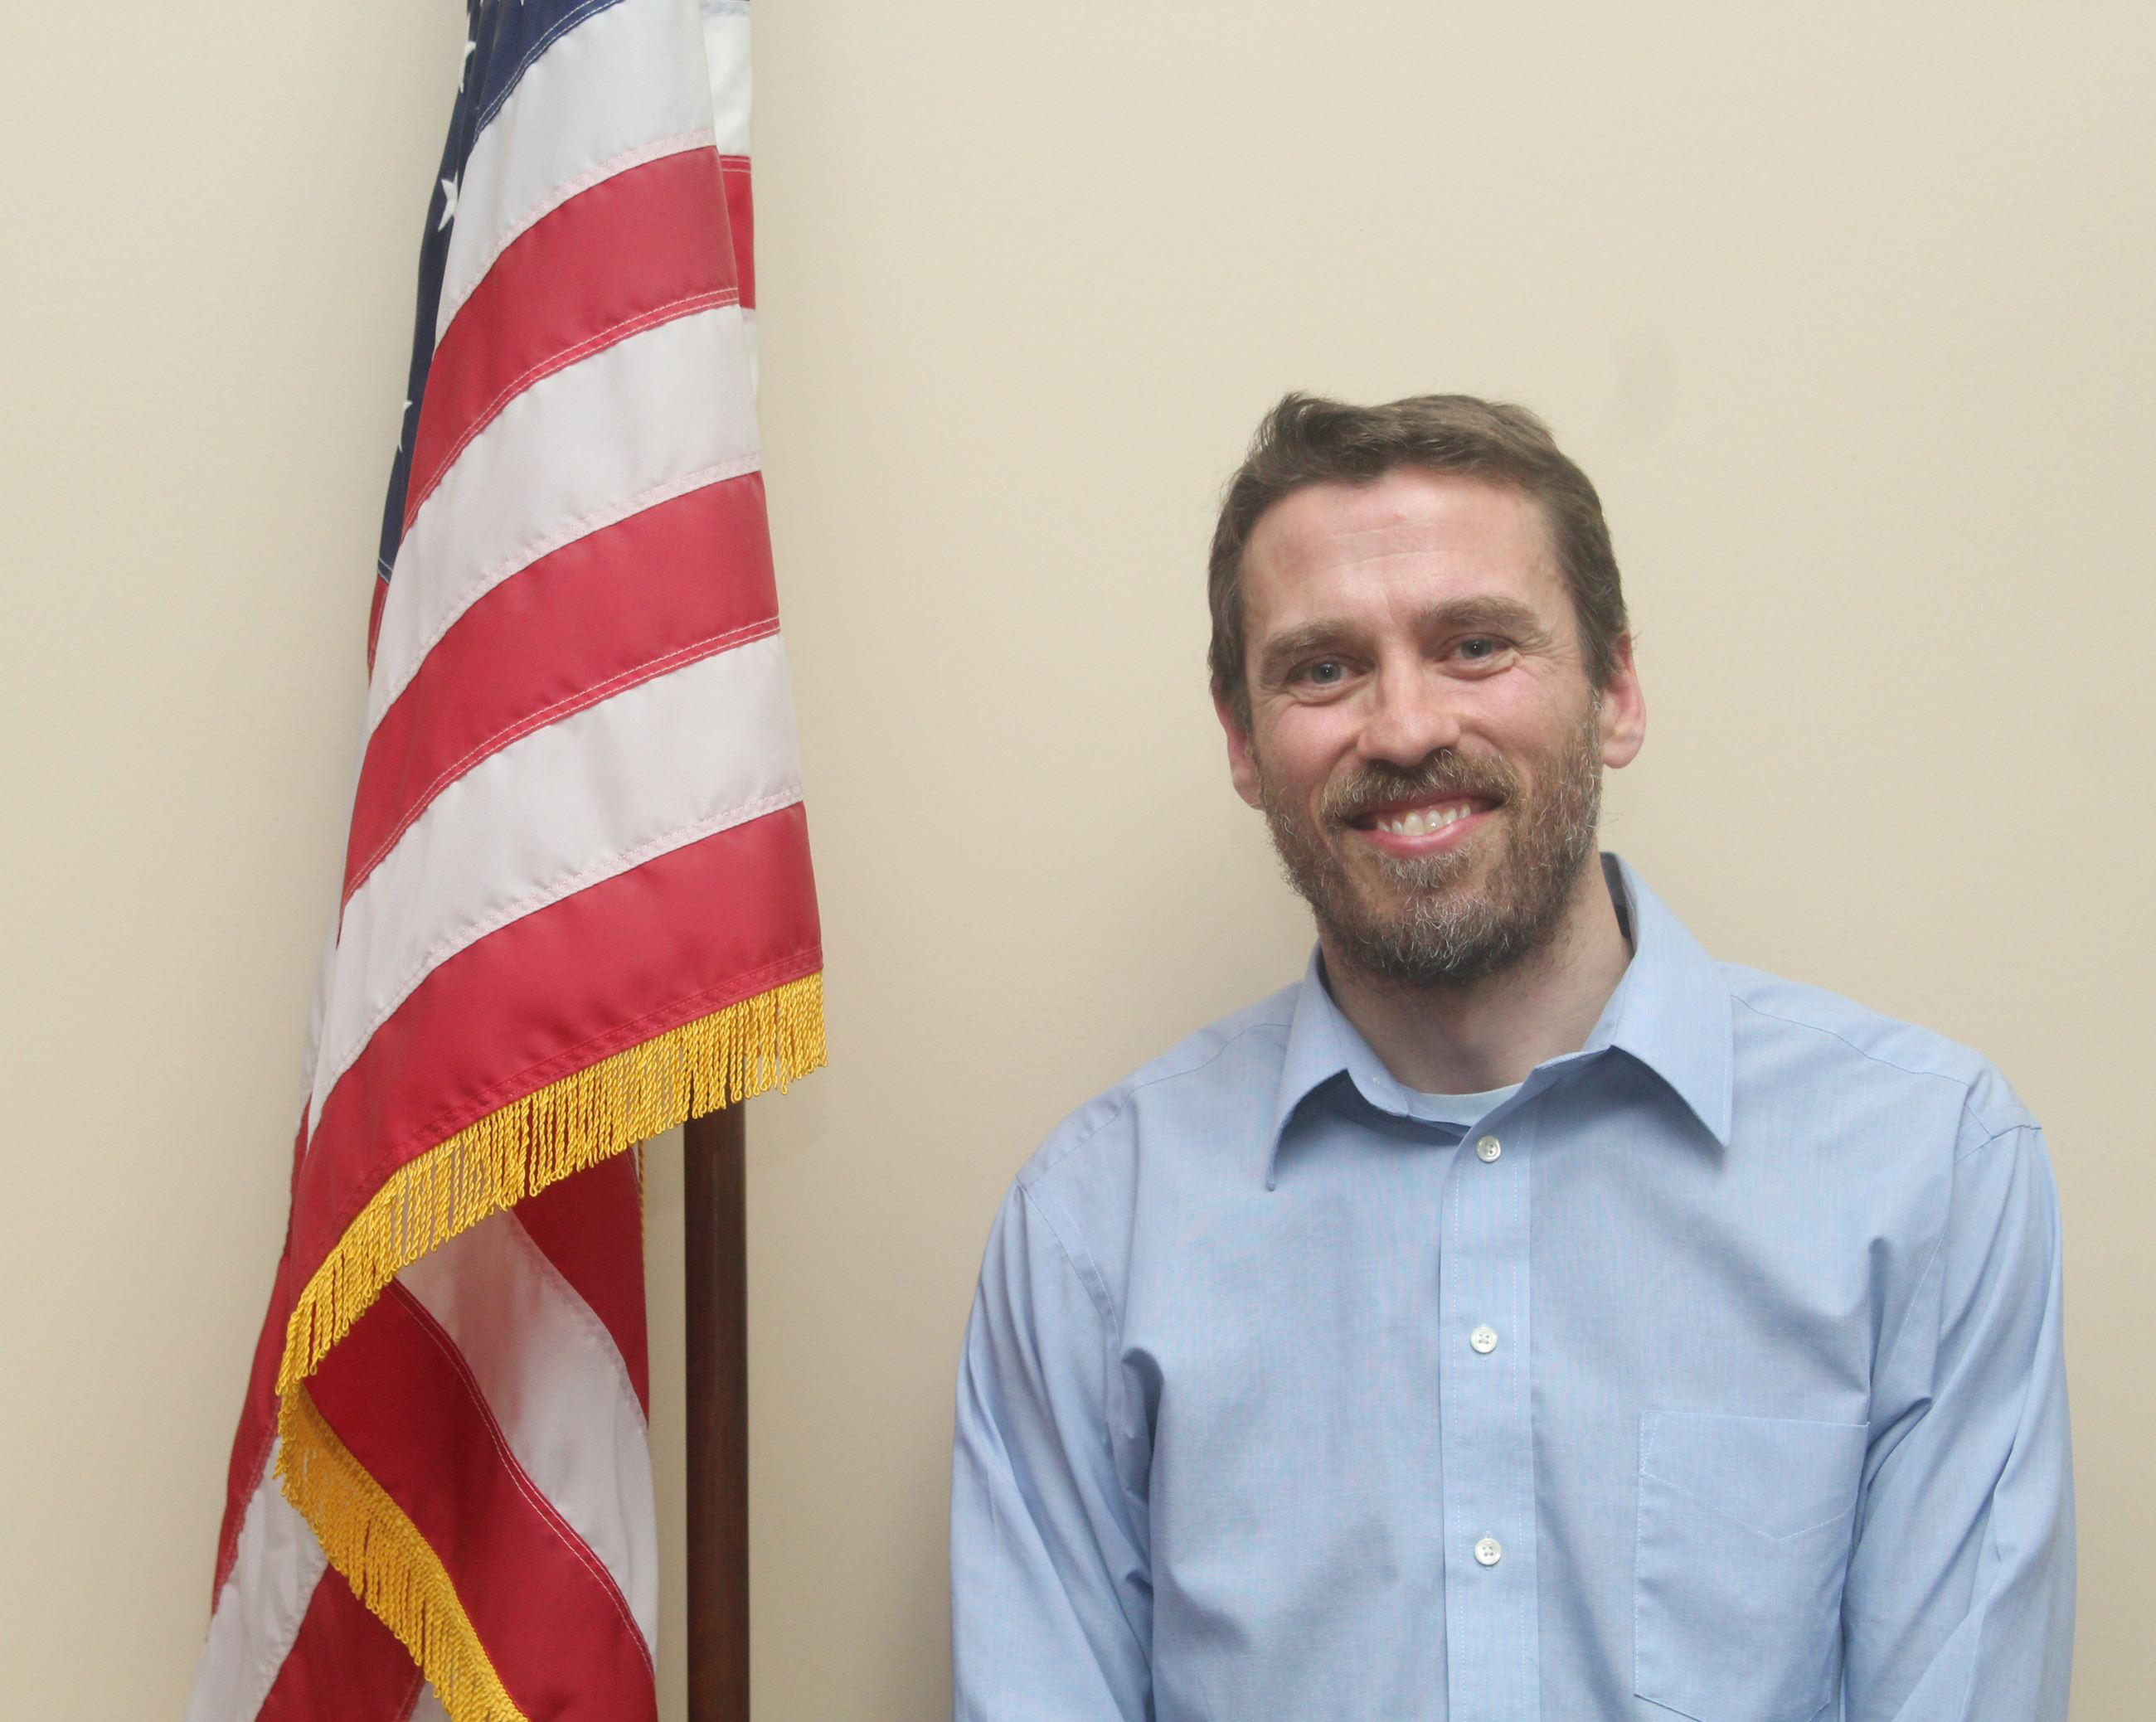 Councilor Ryan Hunter